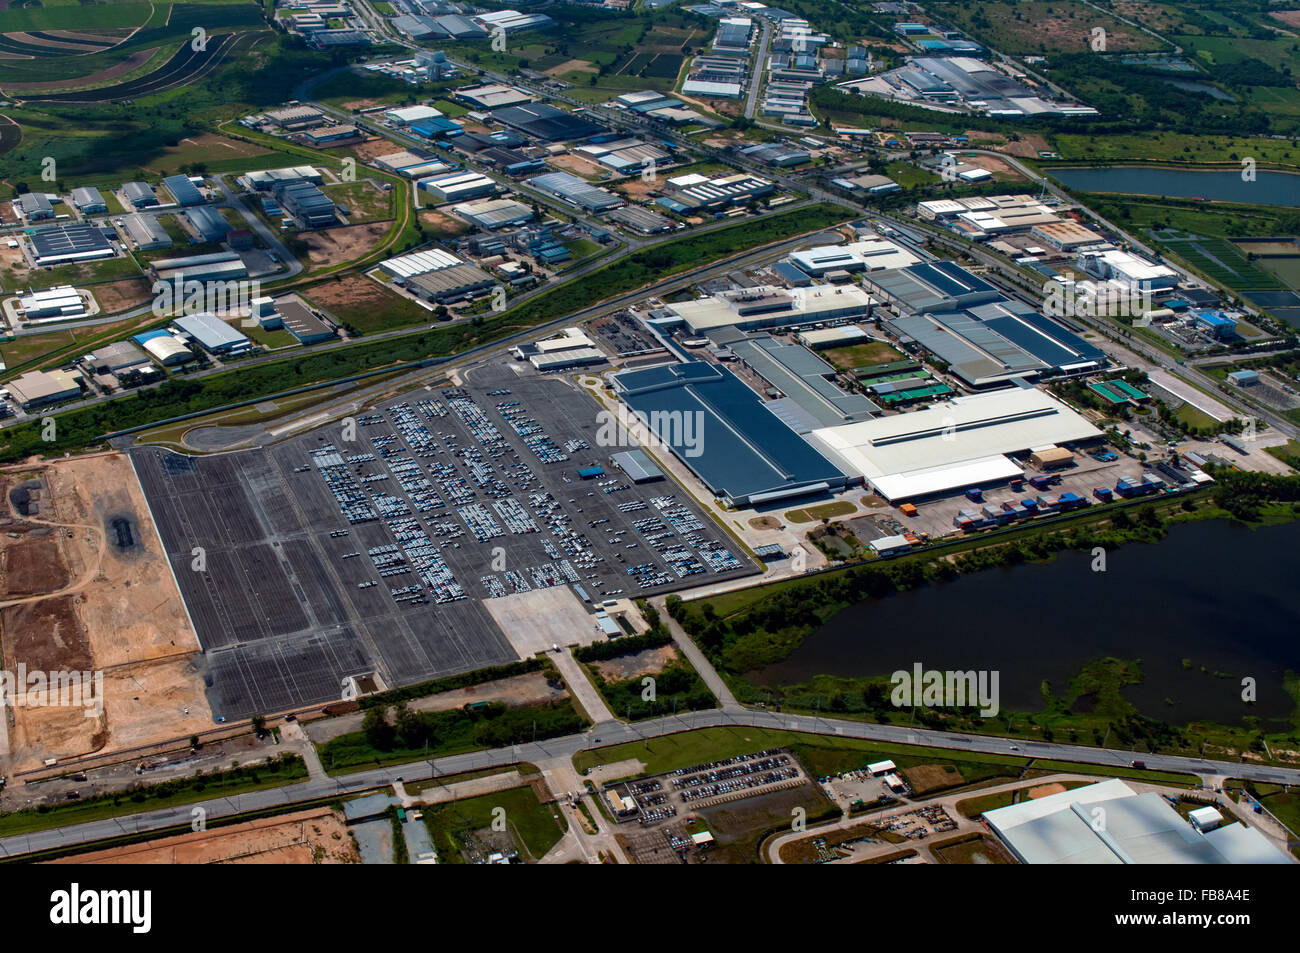 Industrial estate, heavy industry, manufacturer, auto manufacturer in Thailand - Stock Image